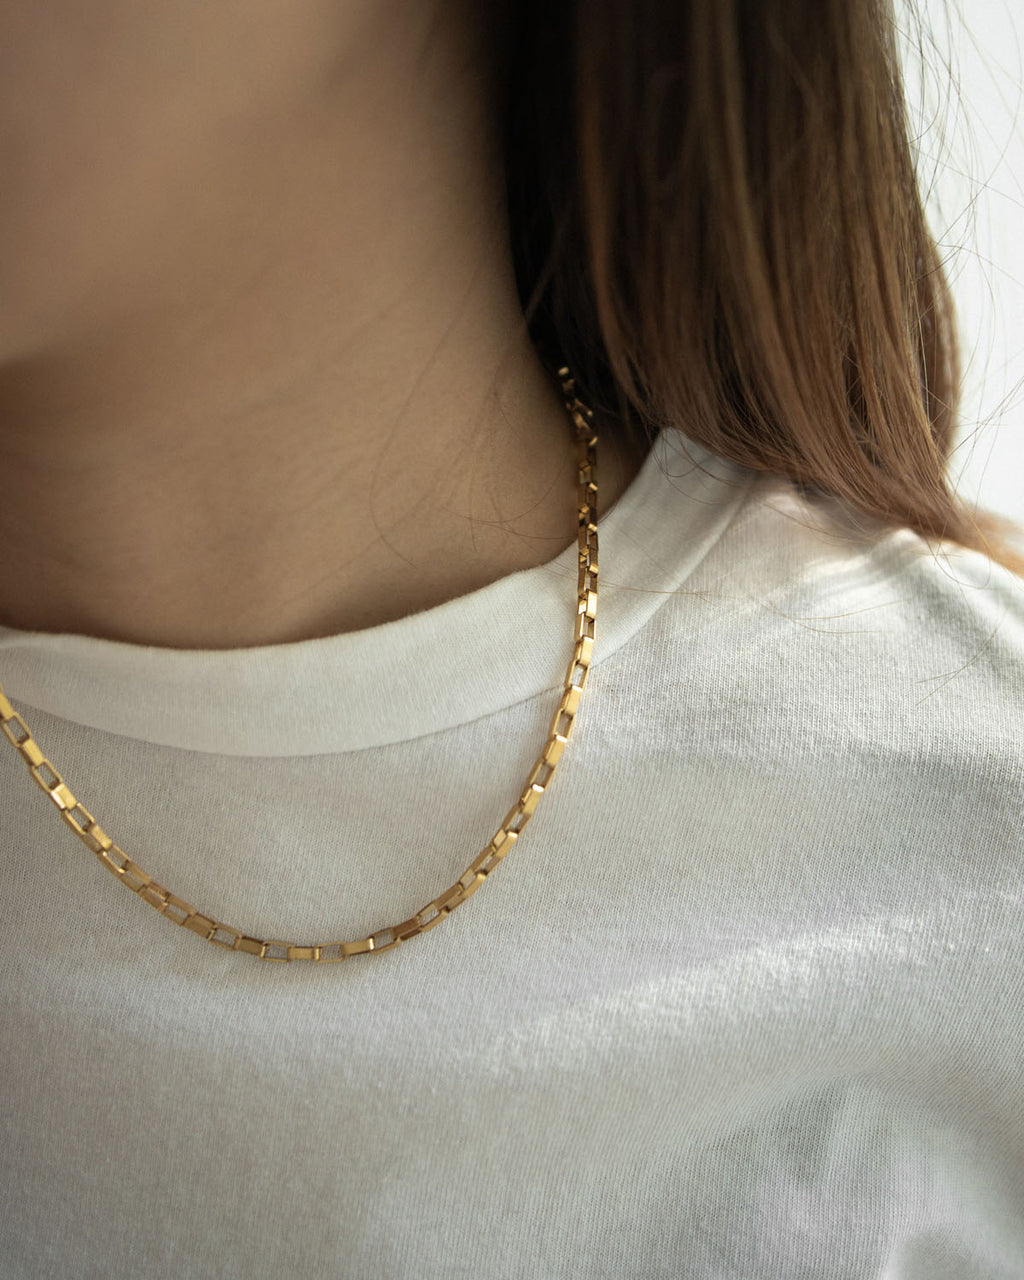 Rectangle chain link necklace in vintage-gold finish @thehexad